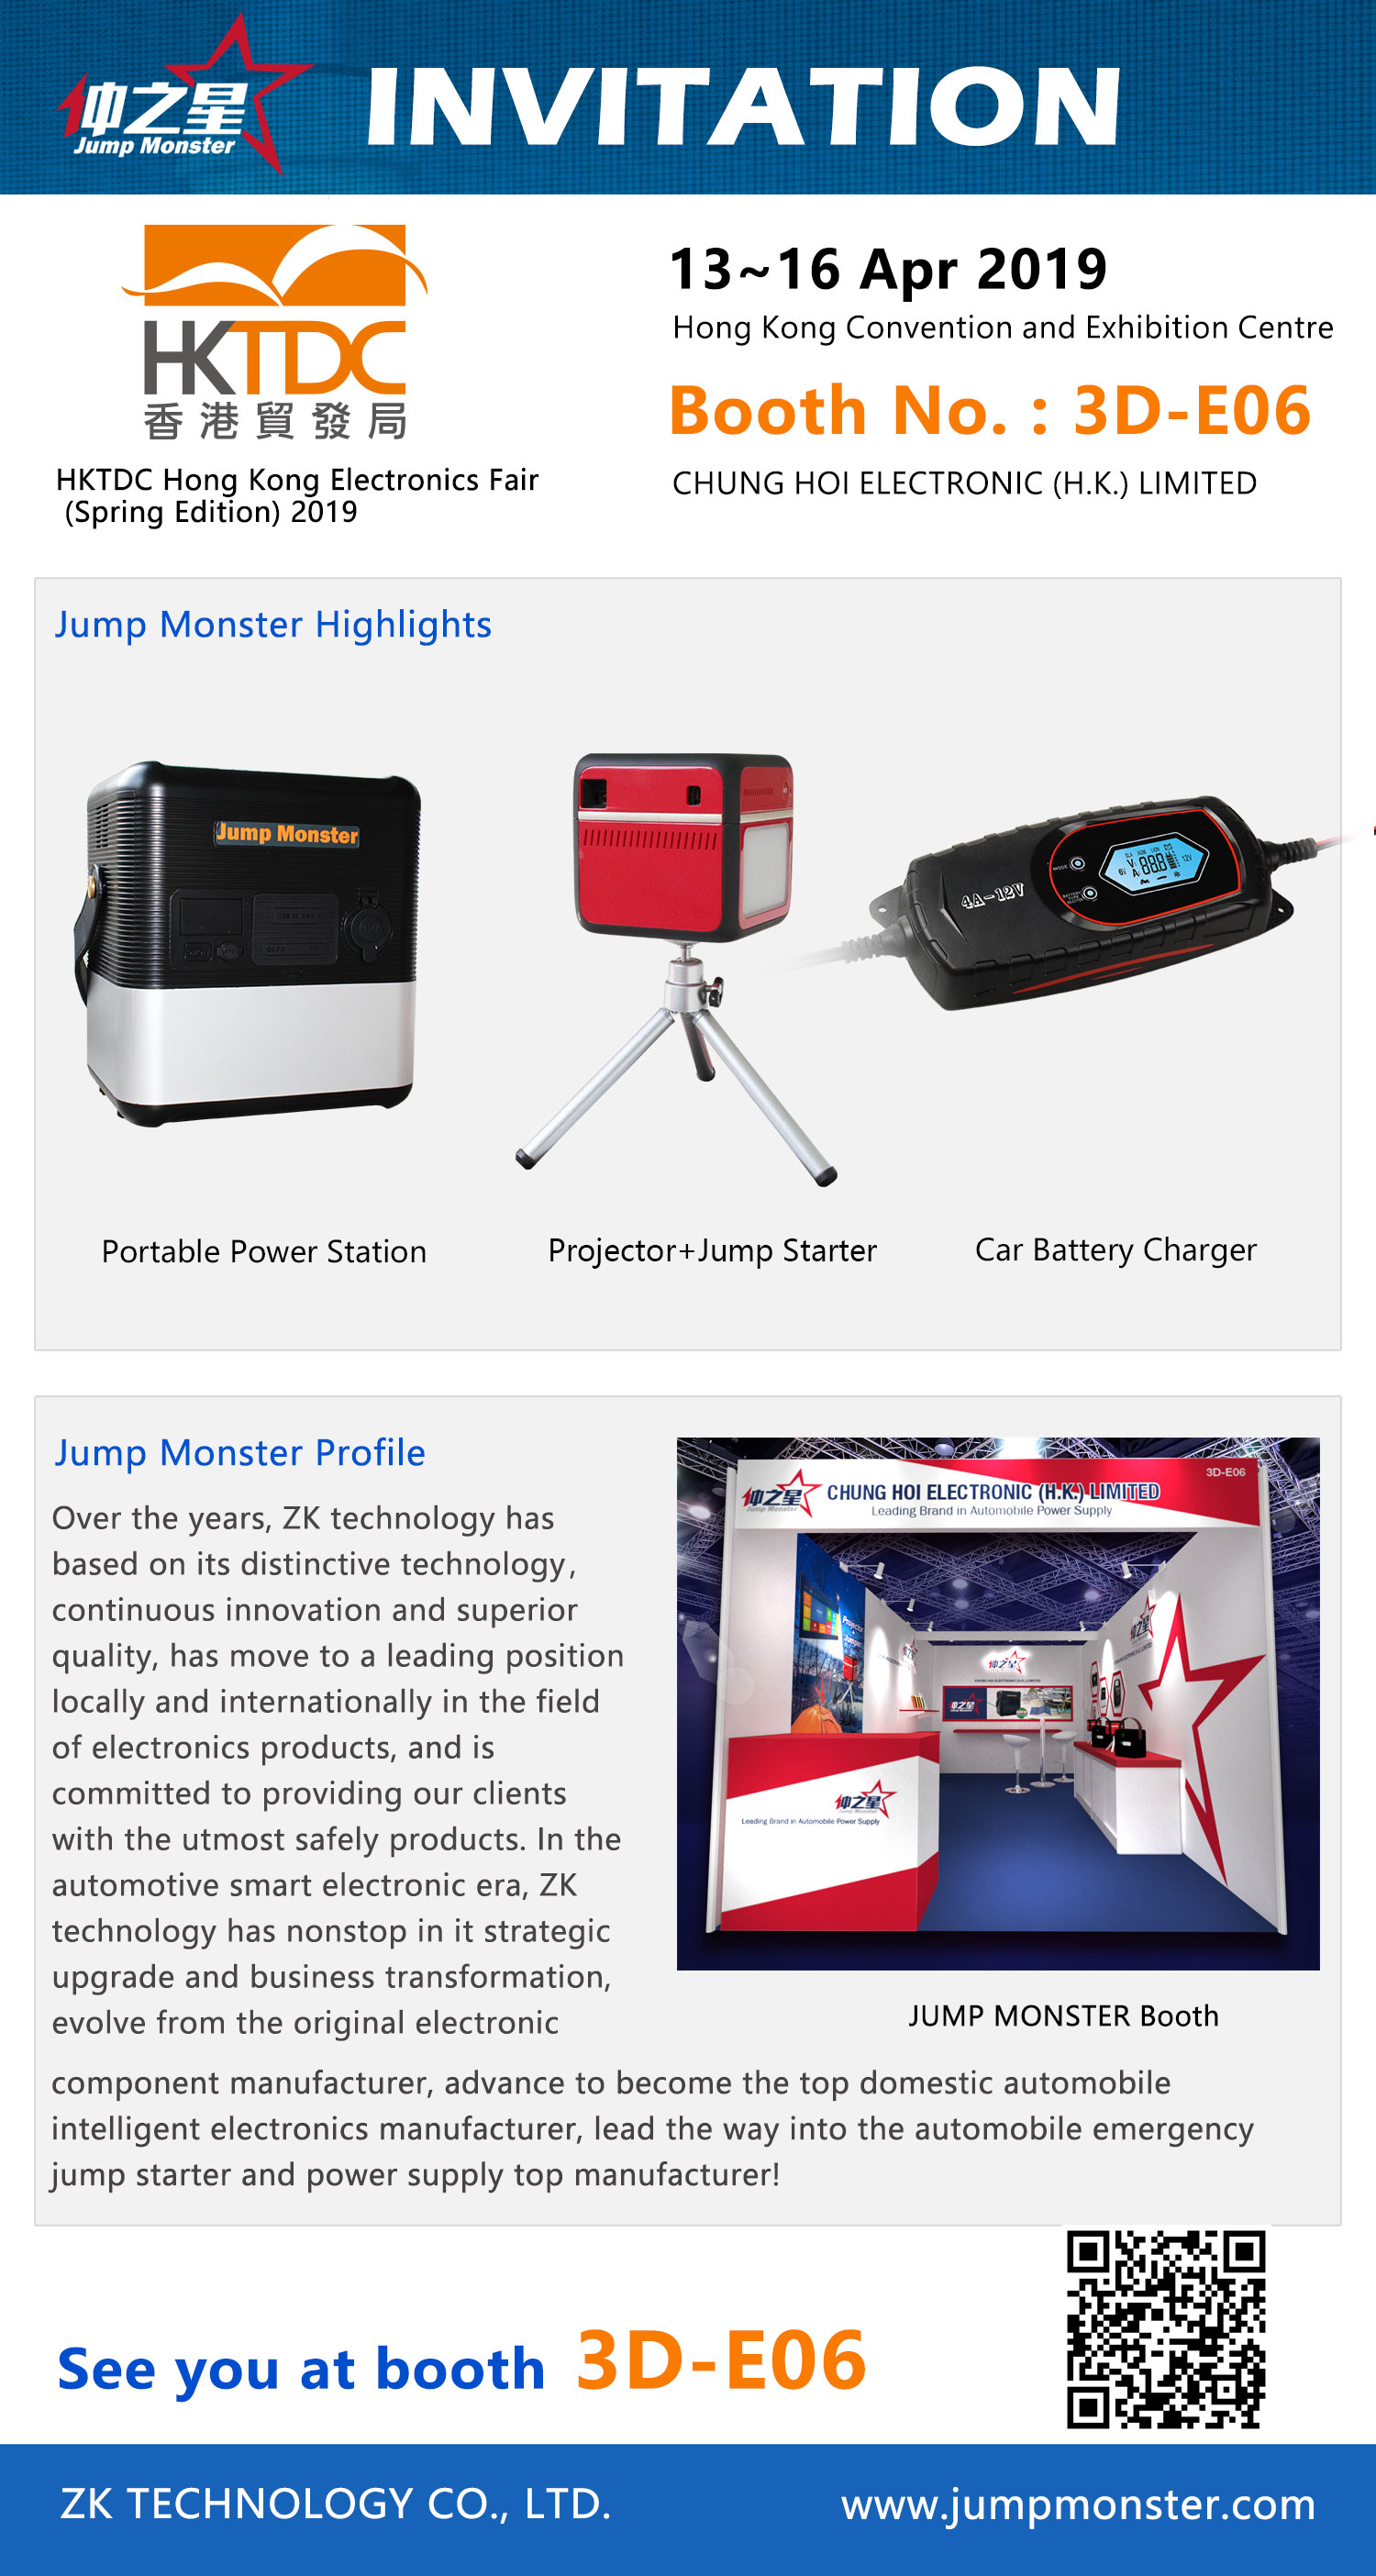 HKTDC Hong Kong Electronics Fair(Spring Edition)2019